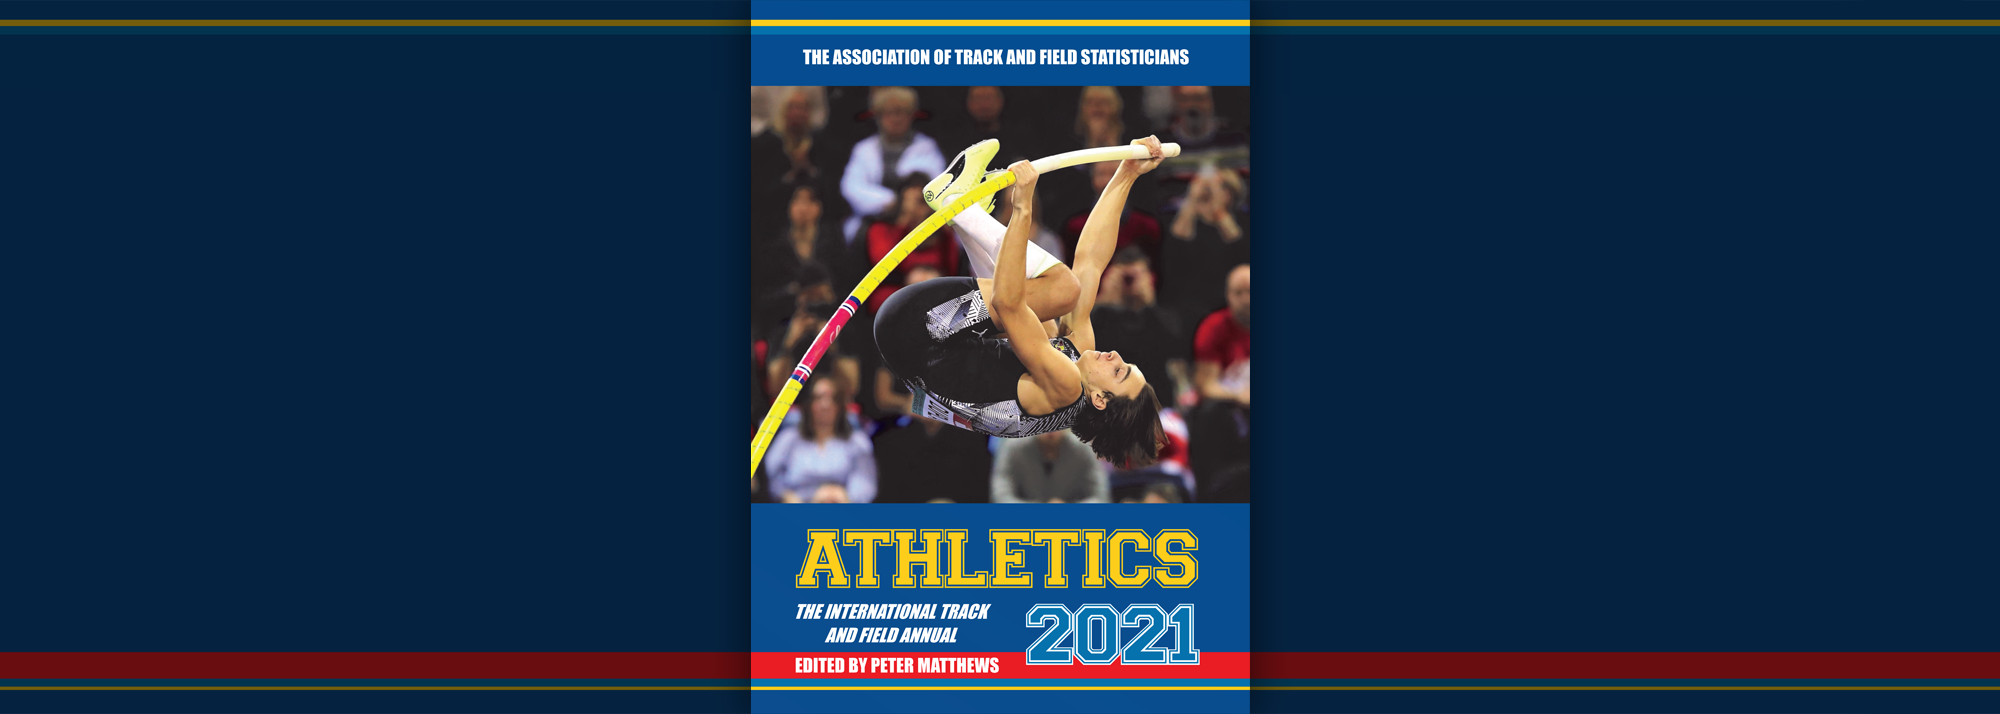 'Athletics 2021 - The International Track and Field Annual' has been published